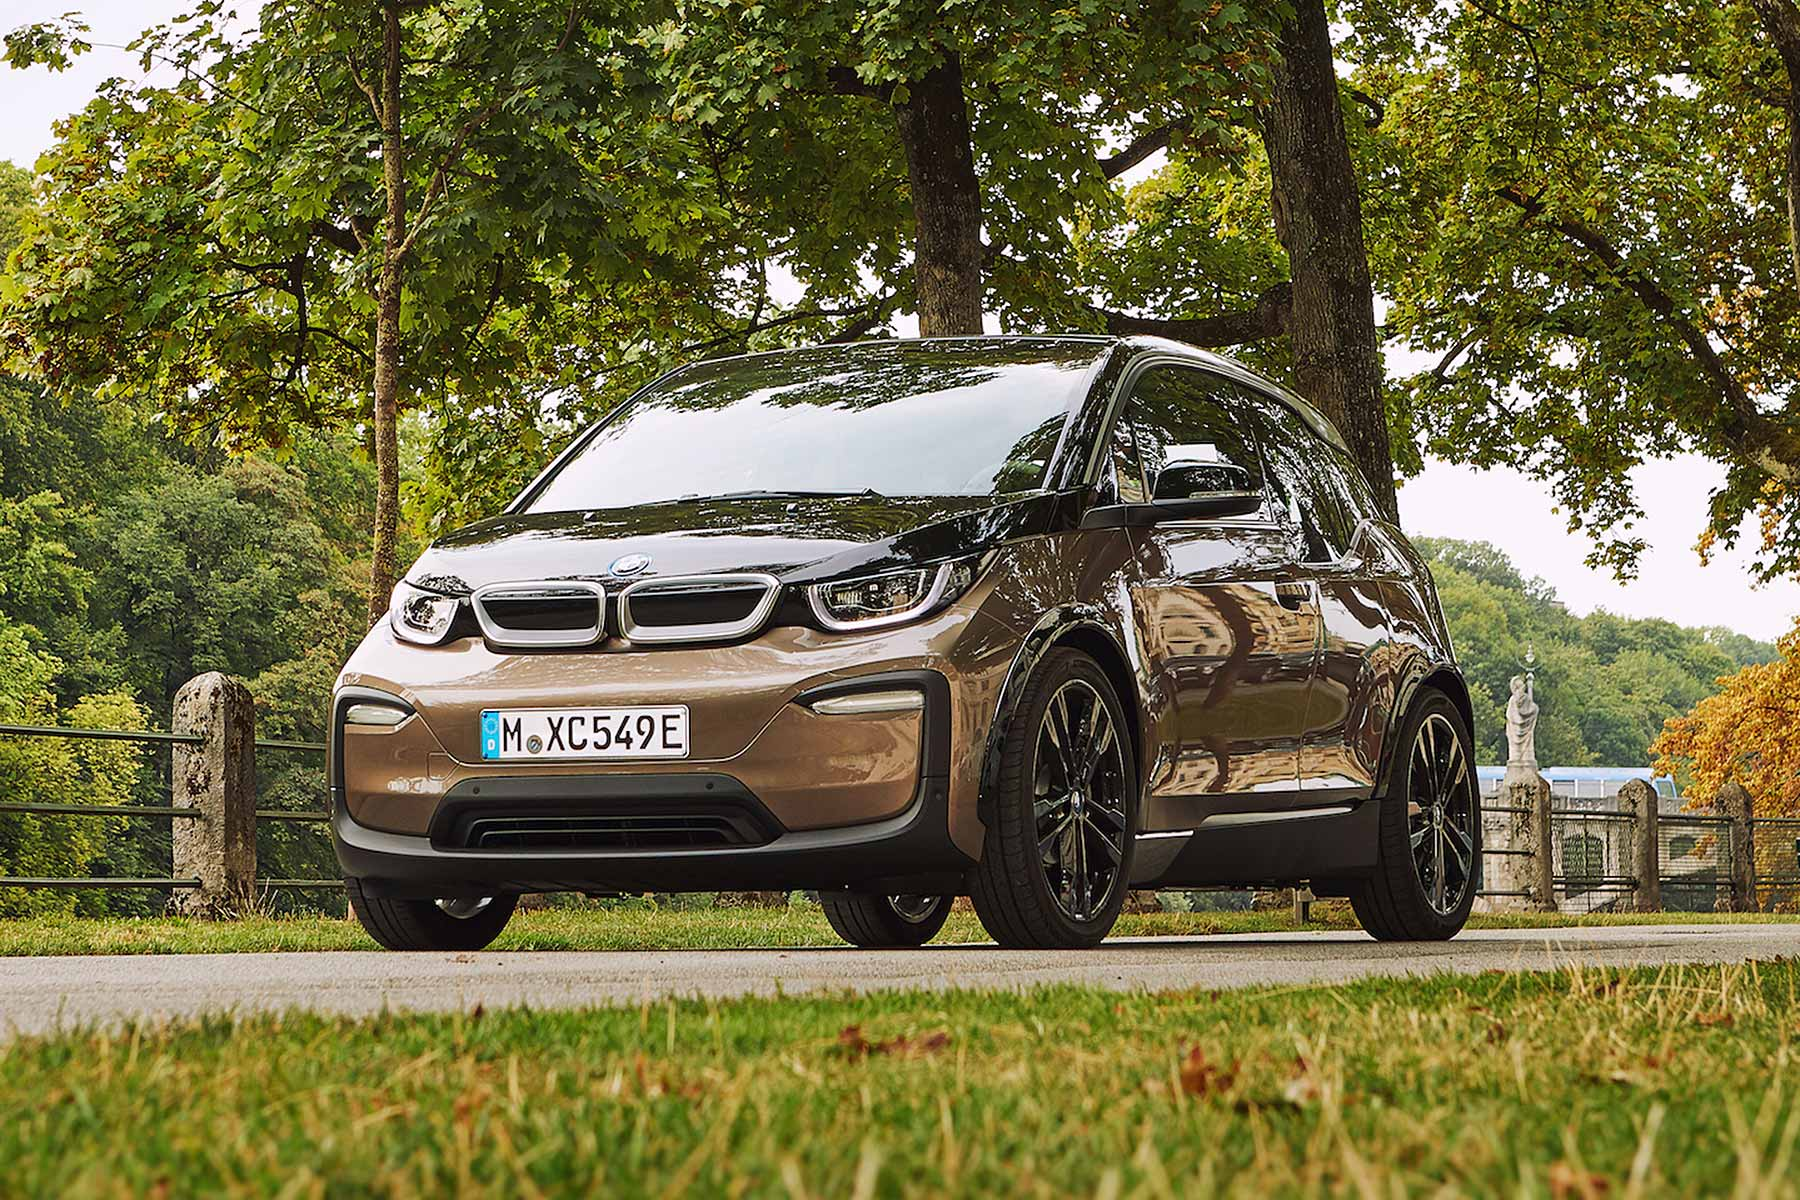 2019 Bmw I3 Electric Car Gets A Battery Boost And Longer Range